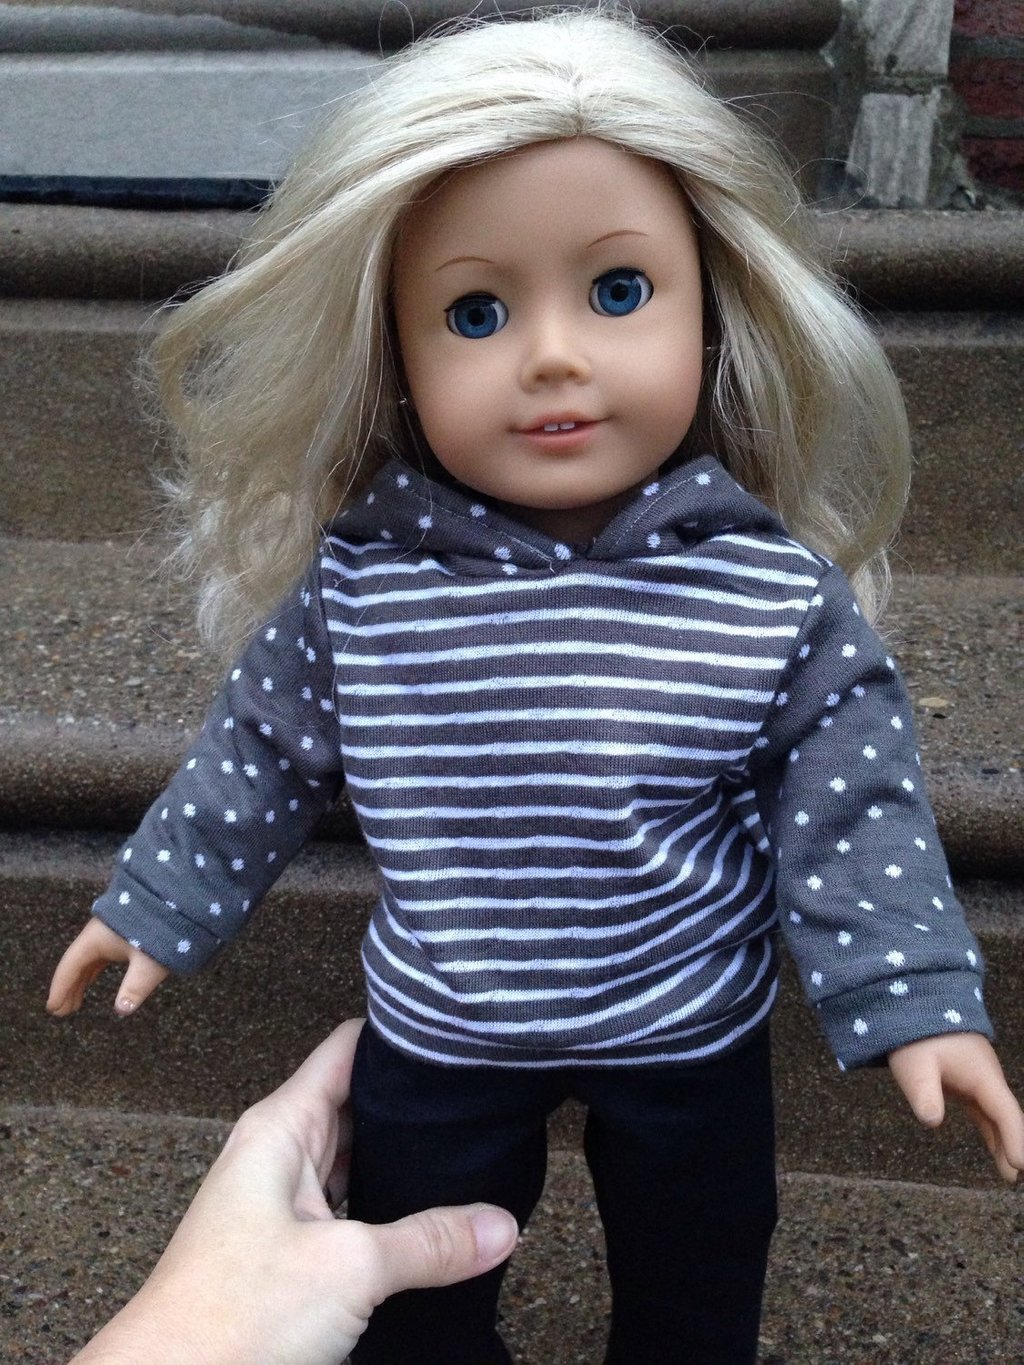 Image of: Handmade Doll Clothe Hoodie Sweatshirt 18 Doll Fun Ideas Doll American Girl Bed Set